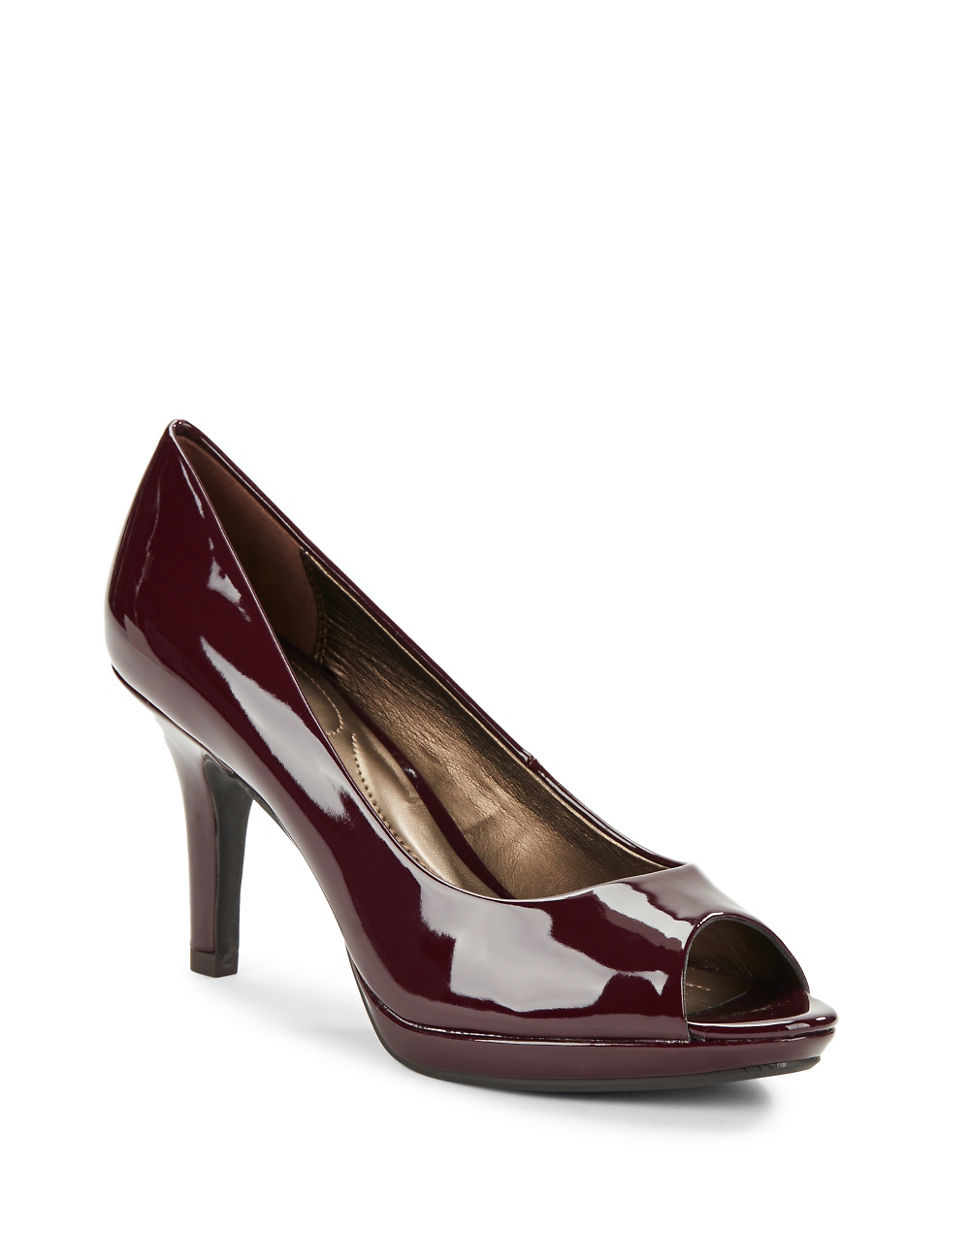 https://cdnc.lystit.com/photos/lordandtaylor/0102-25006161-Burgundy-c8447a58-.jpeg